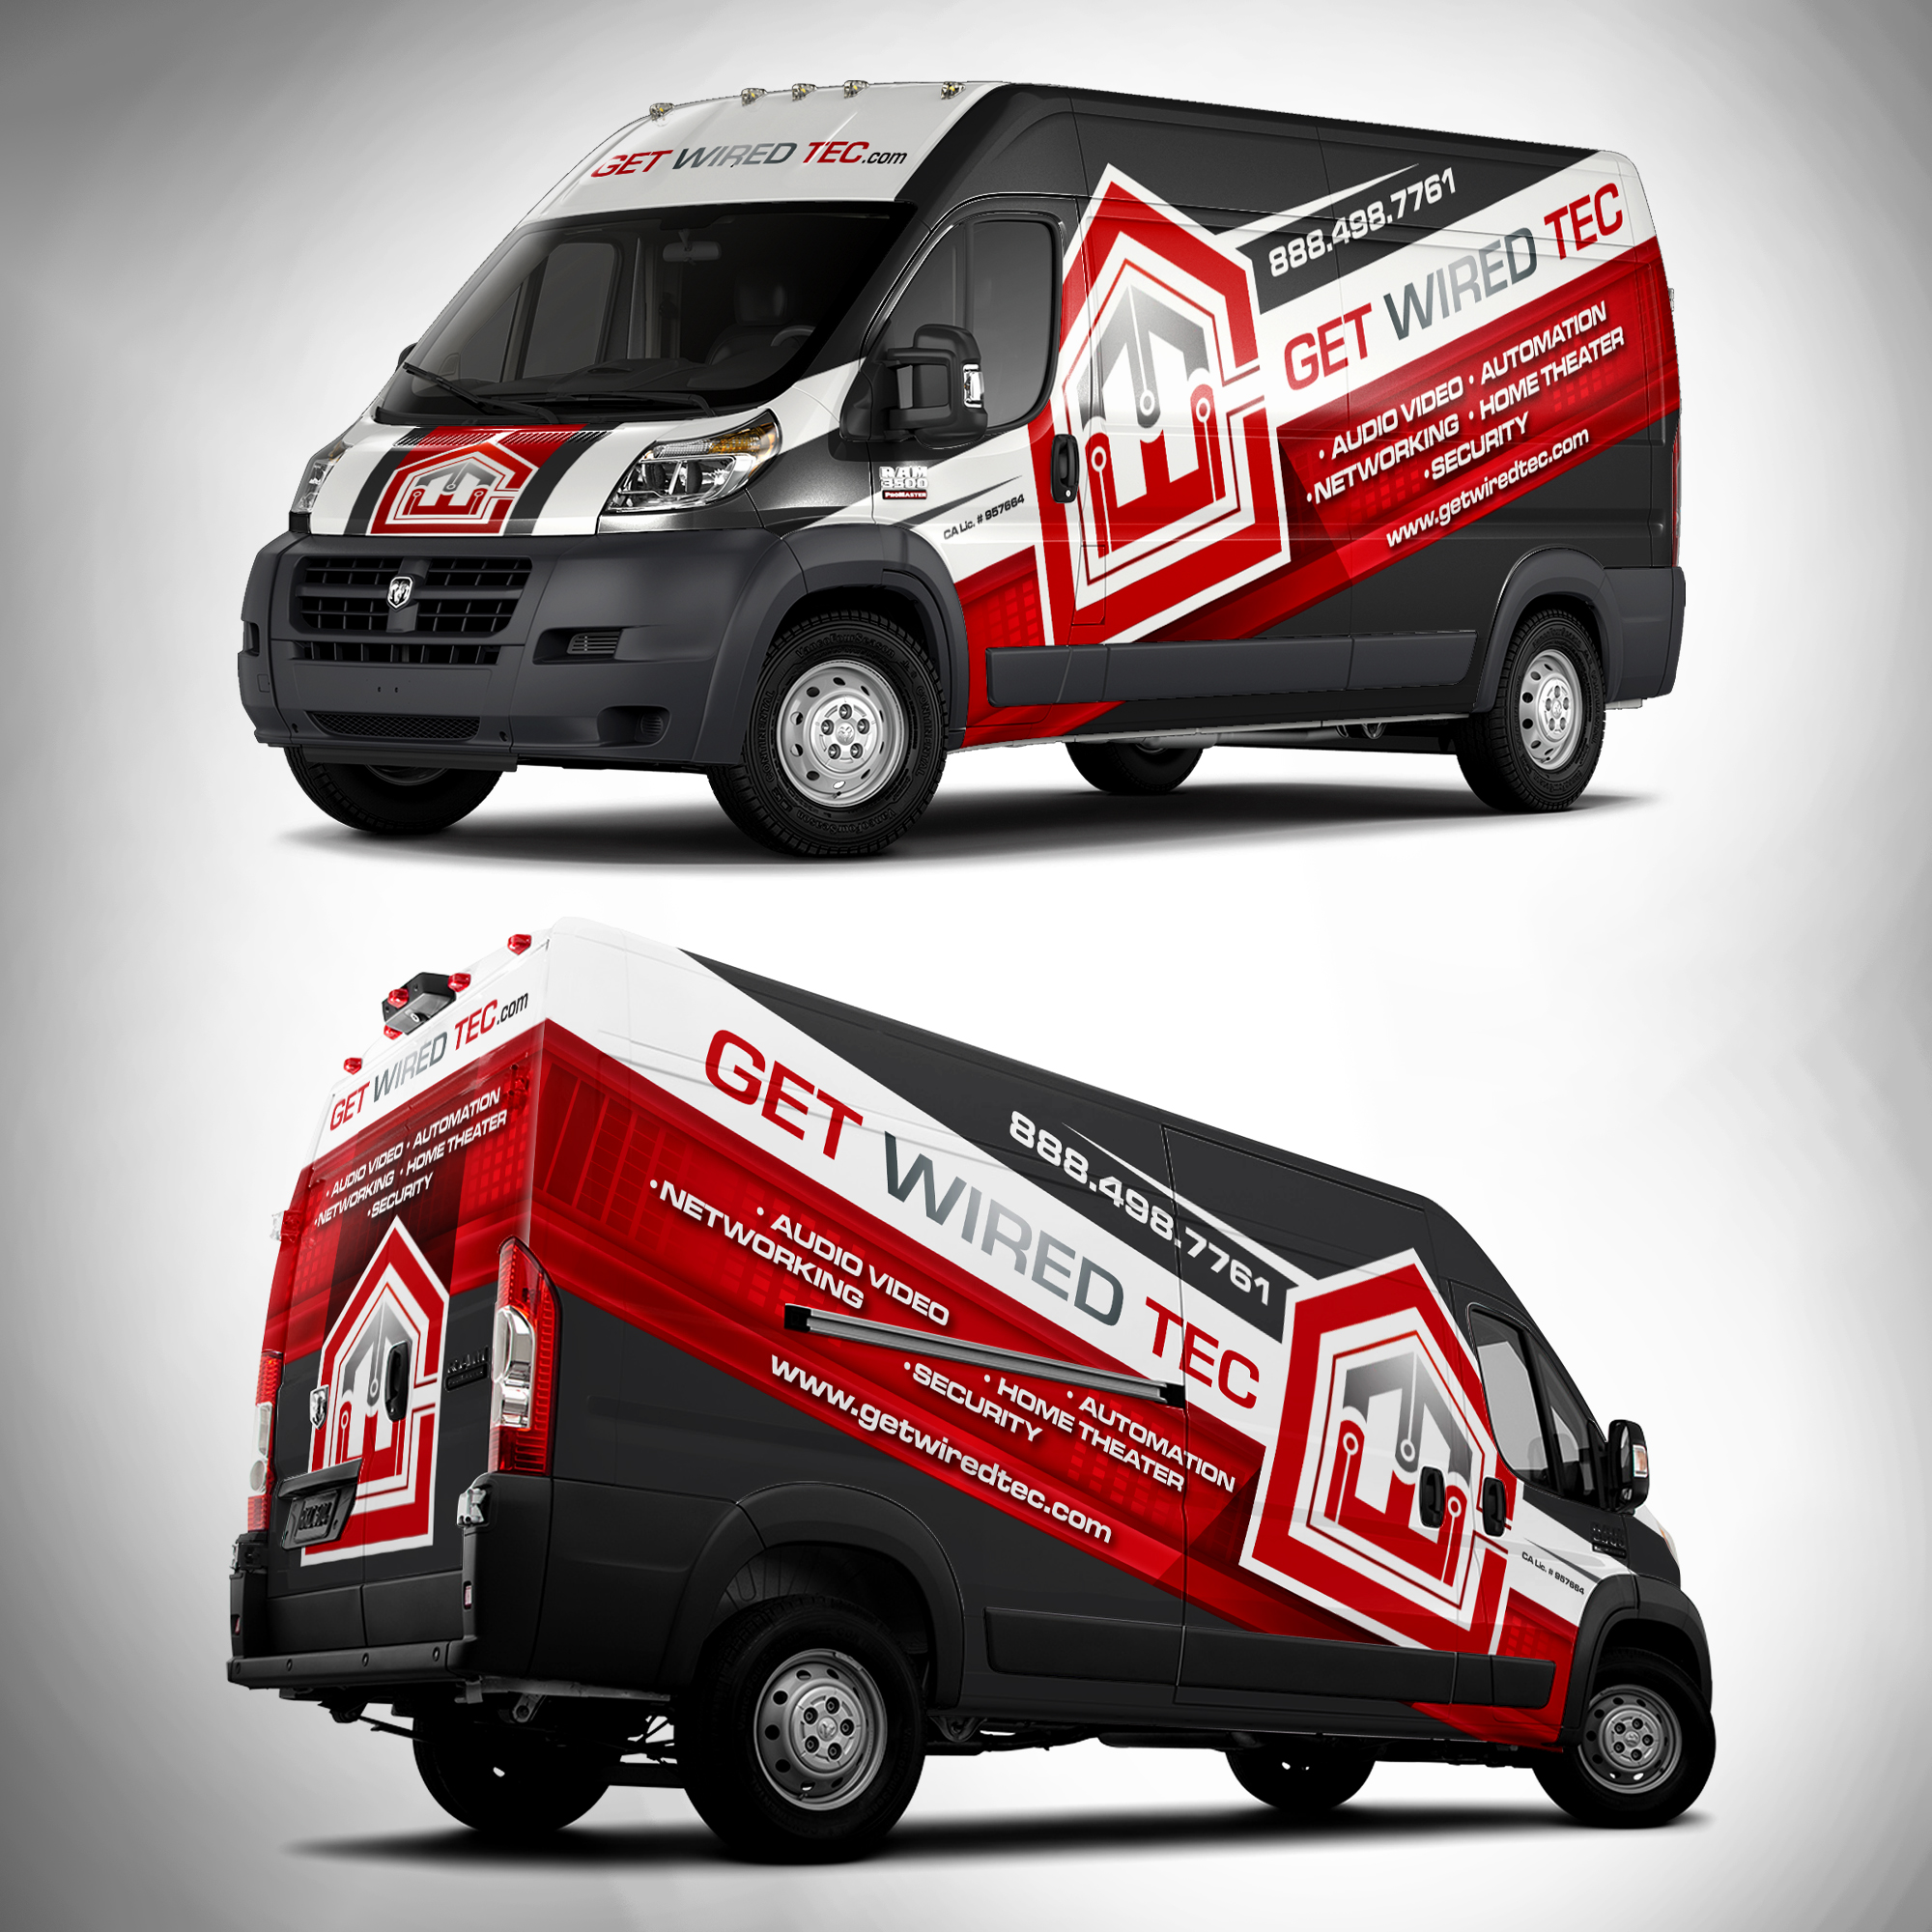 GWTRAM Promasterwrap Zzz Wrap Pinterest Wraps - Car signs and names